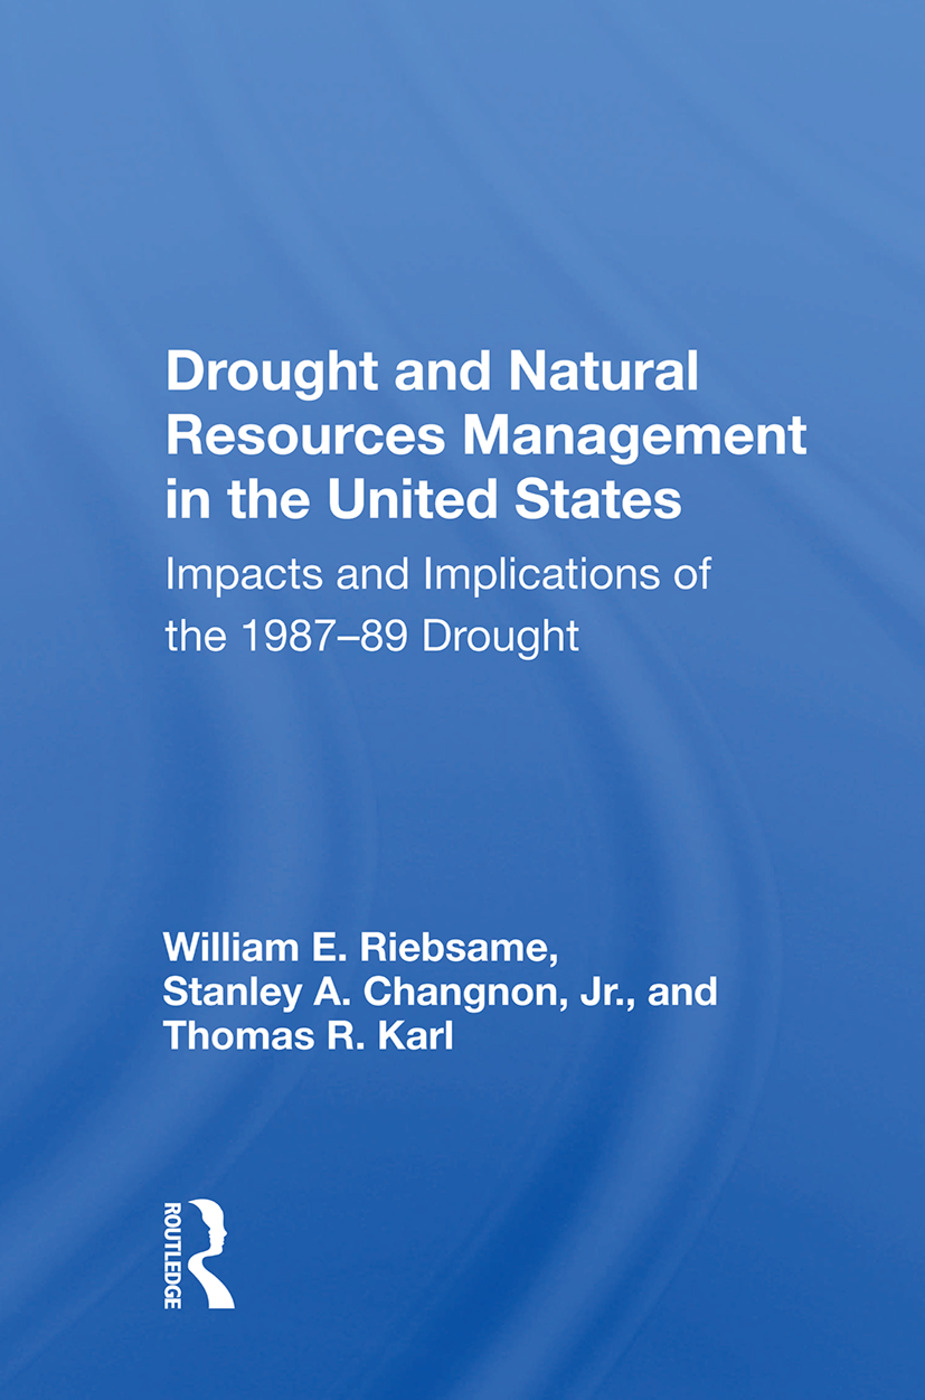 Drought And Natural Resources Management In The United States: Impacts And Implications Of The 1987-89 Drought, 1st Edition (Paperback) book cover